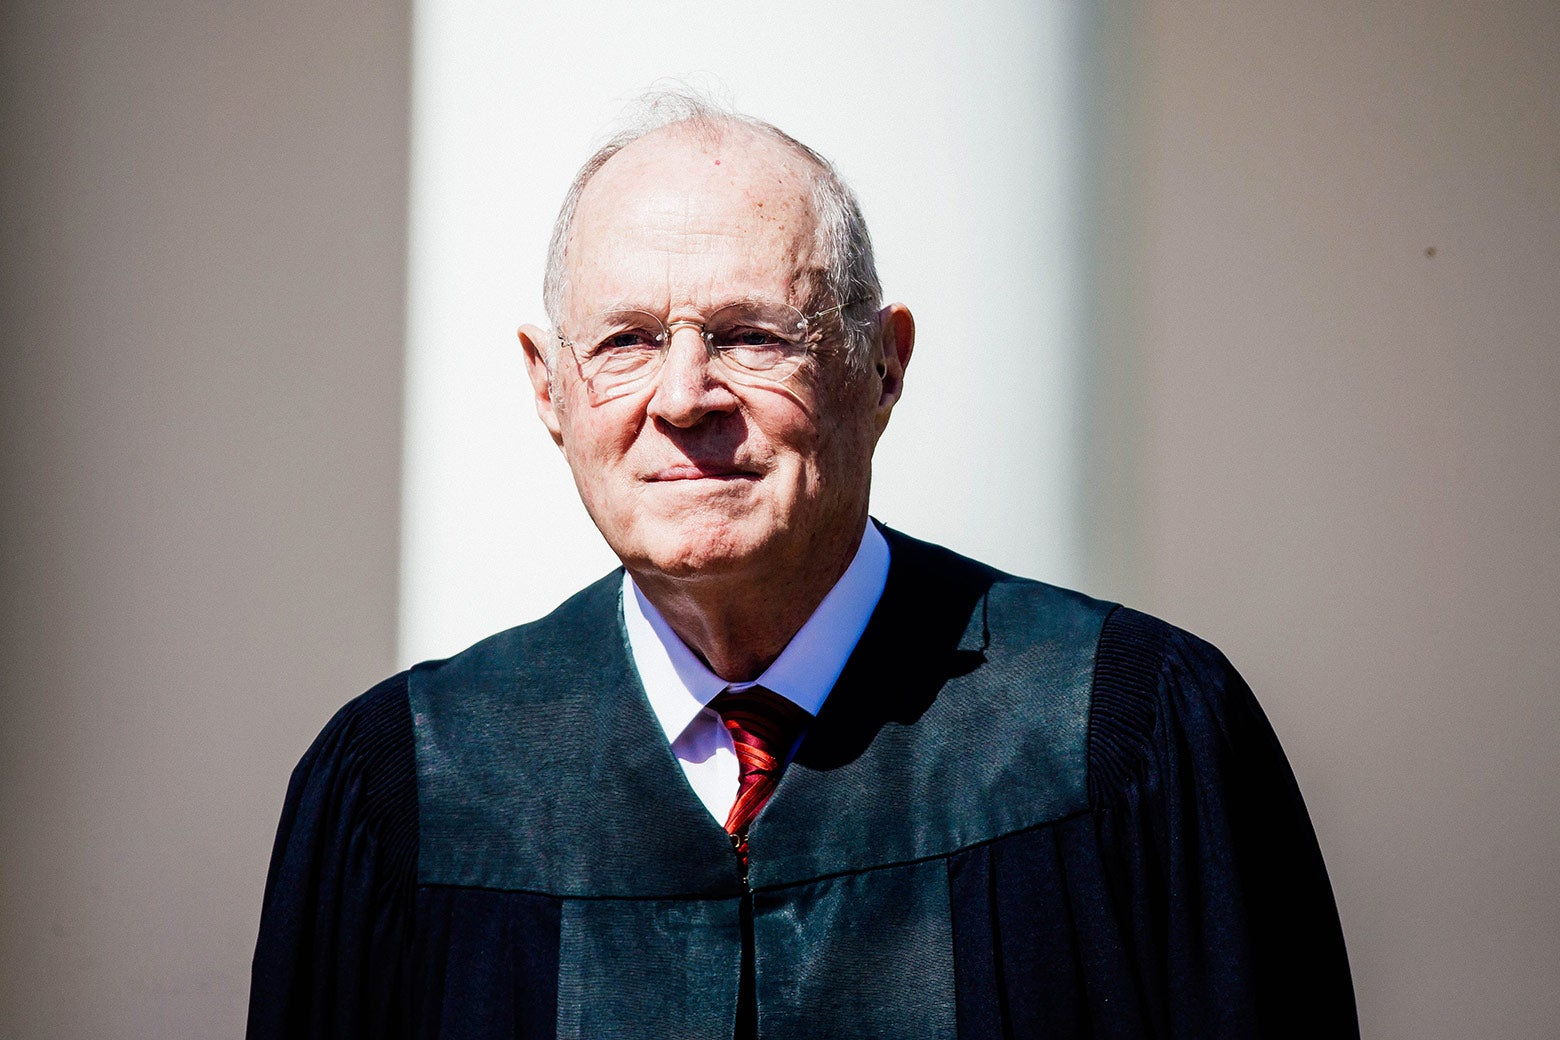 Associate Justice Anthony Kennedy is seen during a ceremony in the Rose Garden at the White House on April 10 in Washington.